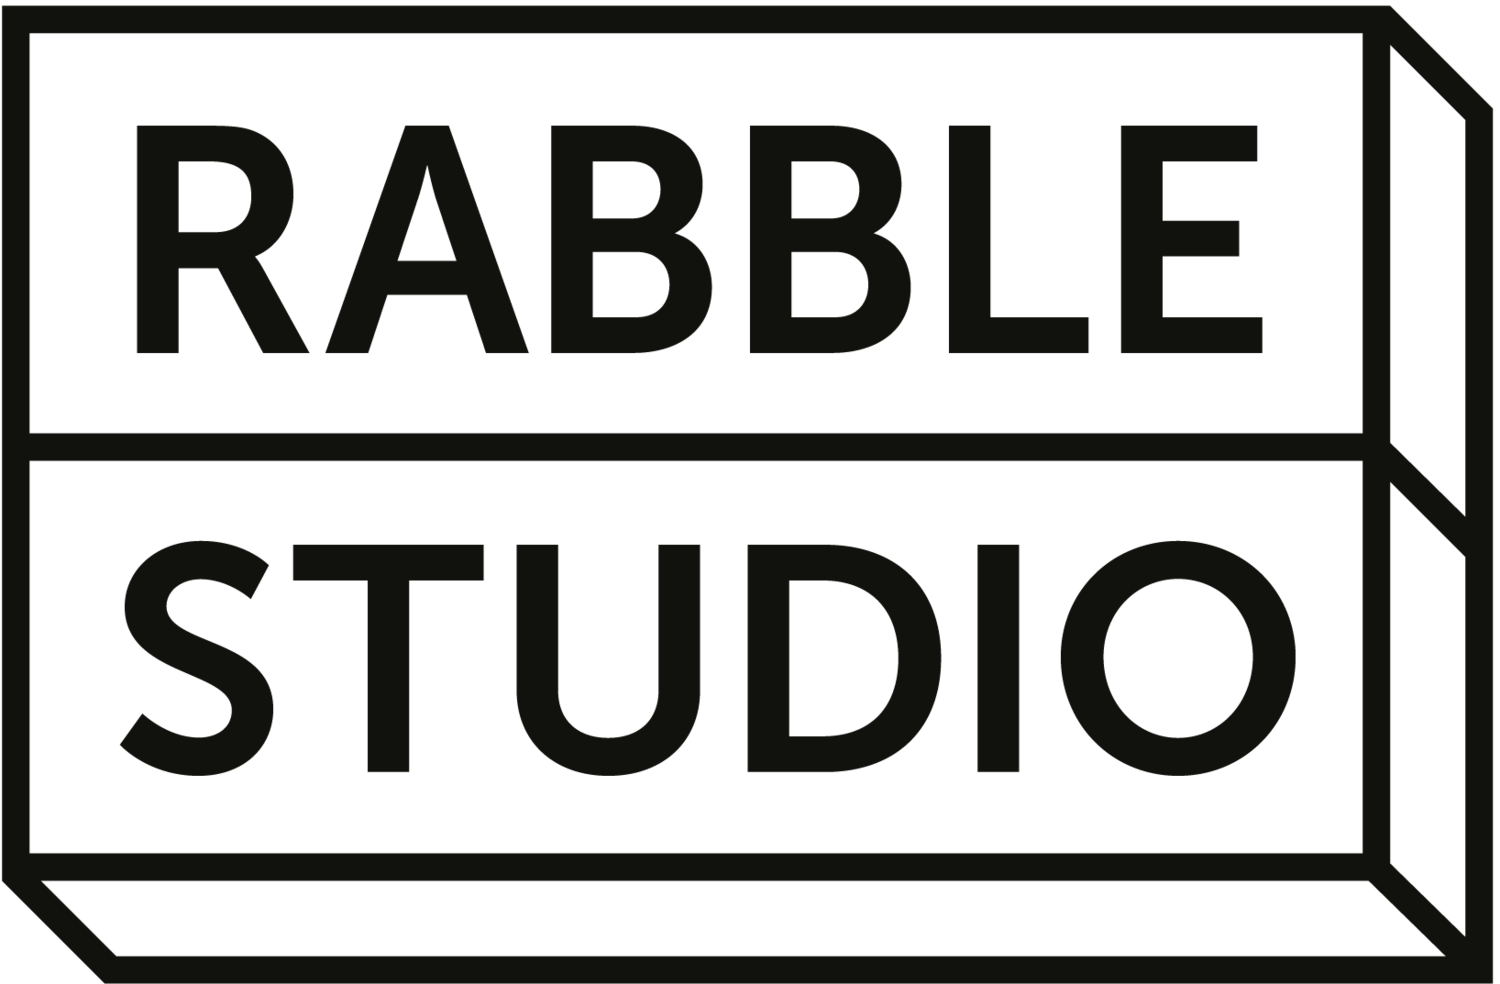 Rabble Studio